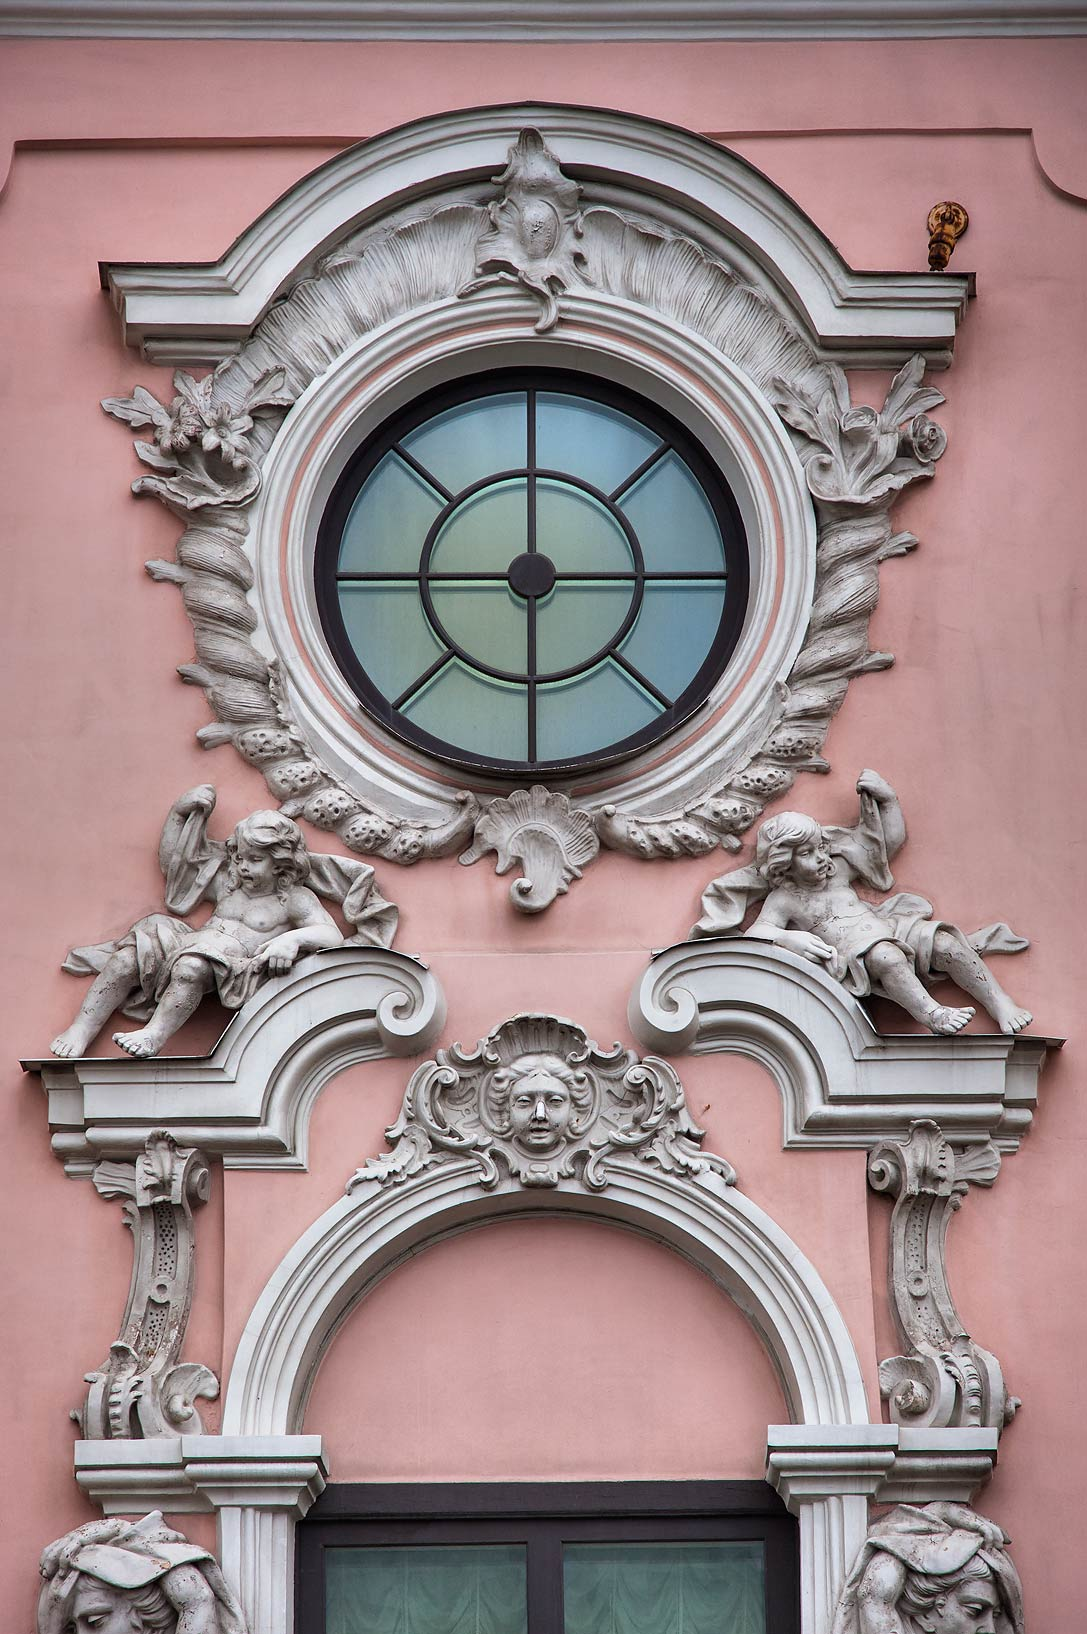 Window decorations at 20 Nevsky Prospect. St.Petersburg, Russia